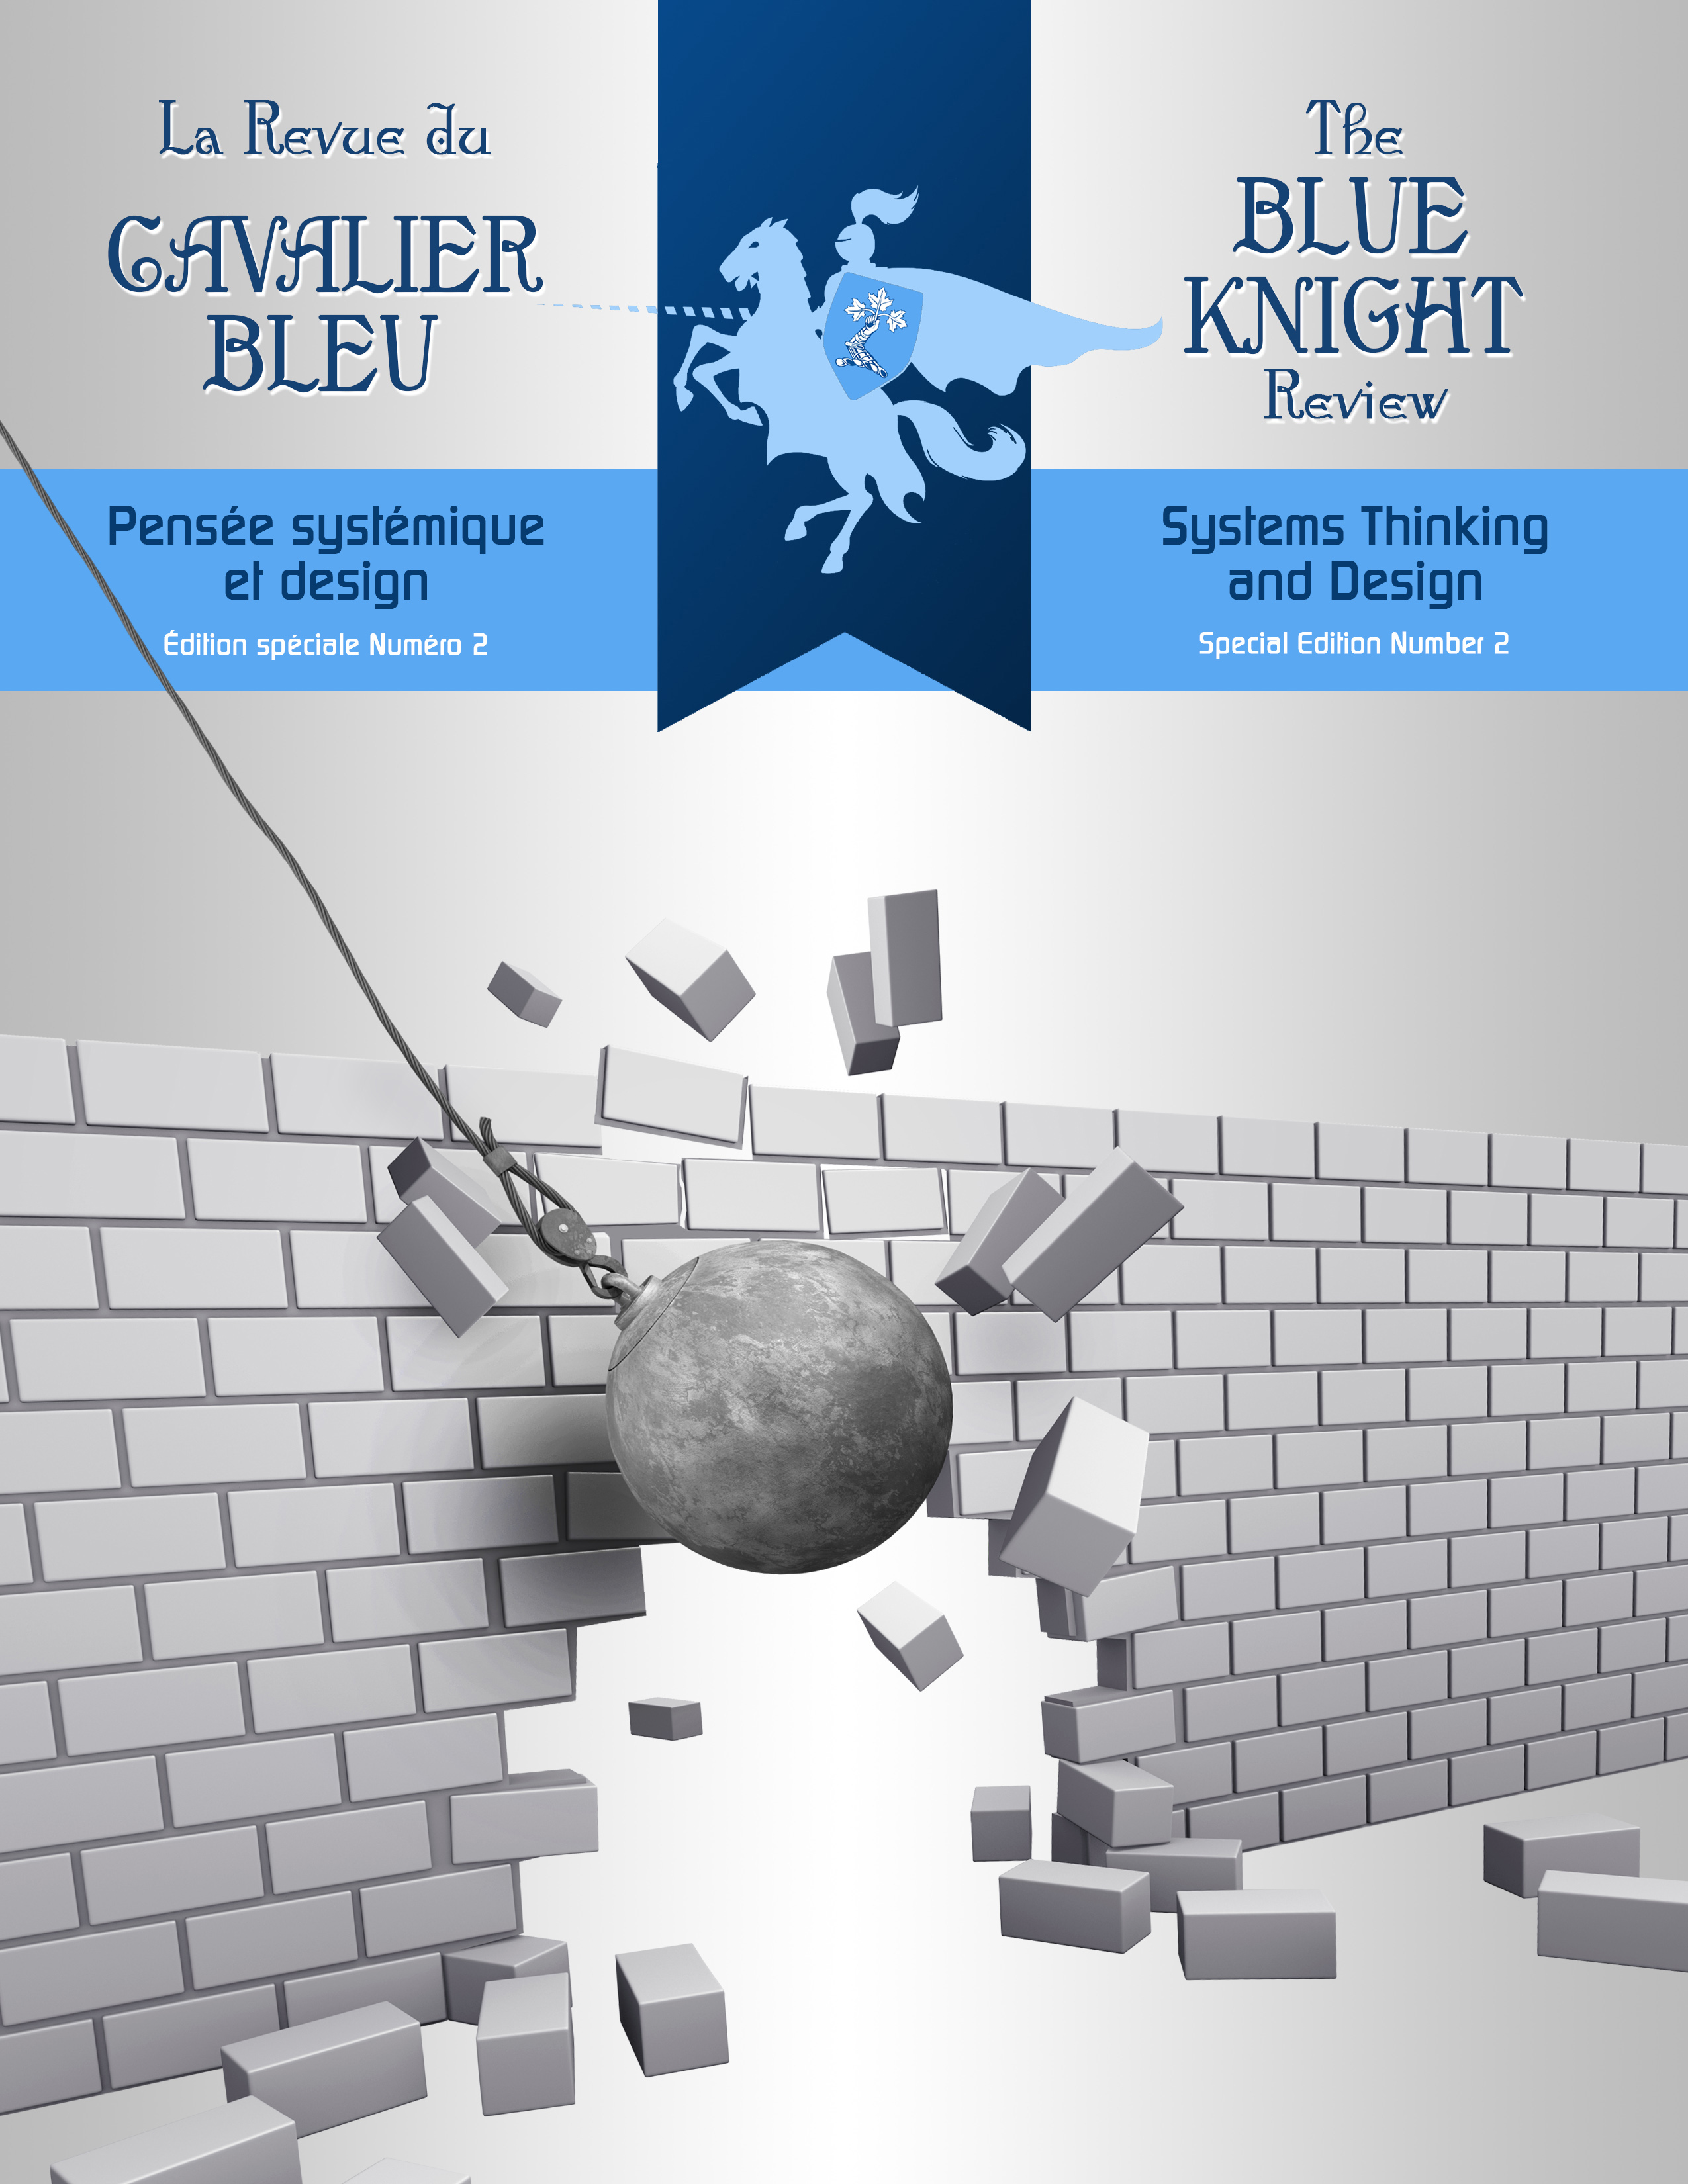 The Blue Knight Review (Journal of the Royal Military College St Jean): Special Edition No. 2: Systems Thinking and Design